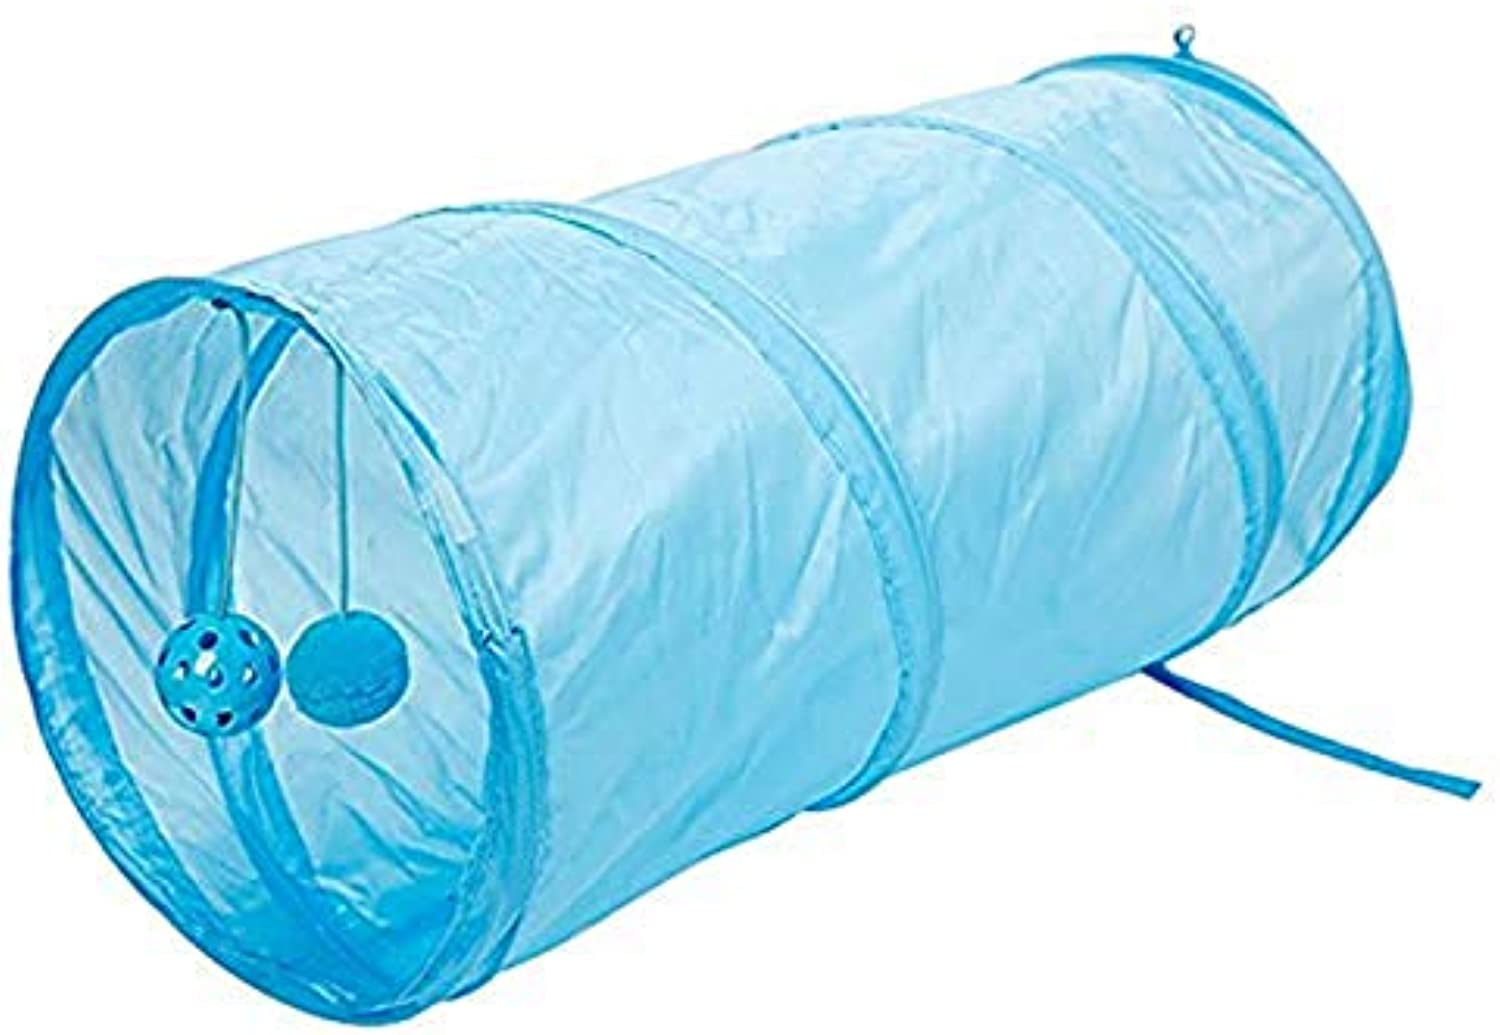 Funny Pet Cat Tunnel, 2 Holes Play Tubes Balls Collapsible Crinkle Kitten Toys Puppy Ferrets Rabbit Play Dog Tunnel Tubes,bluee